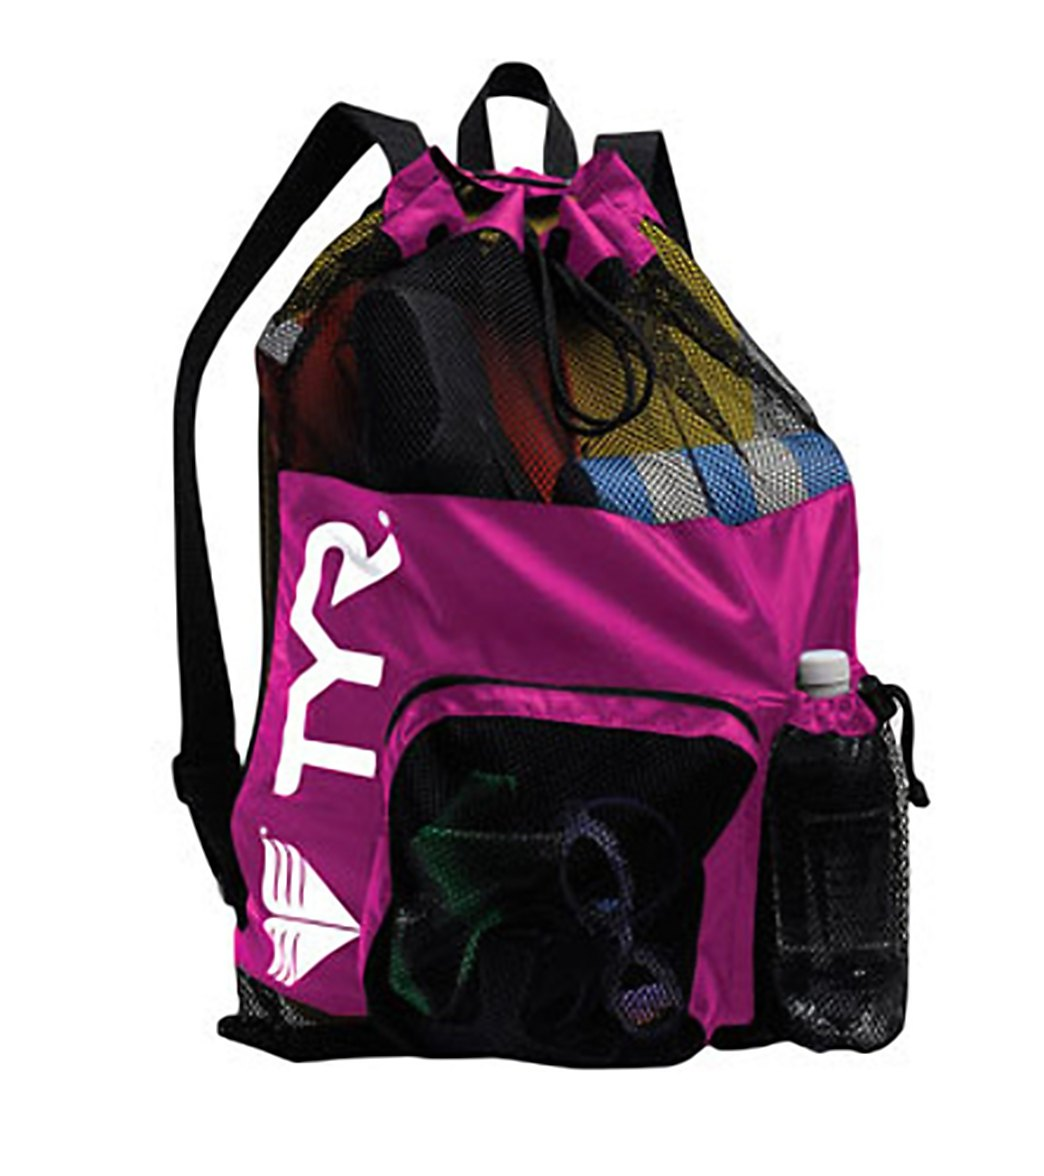 Tyr Mesh Mummy Bag Ii At Swimoutlet